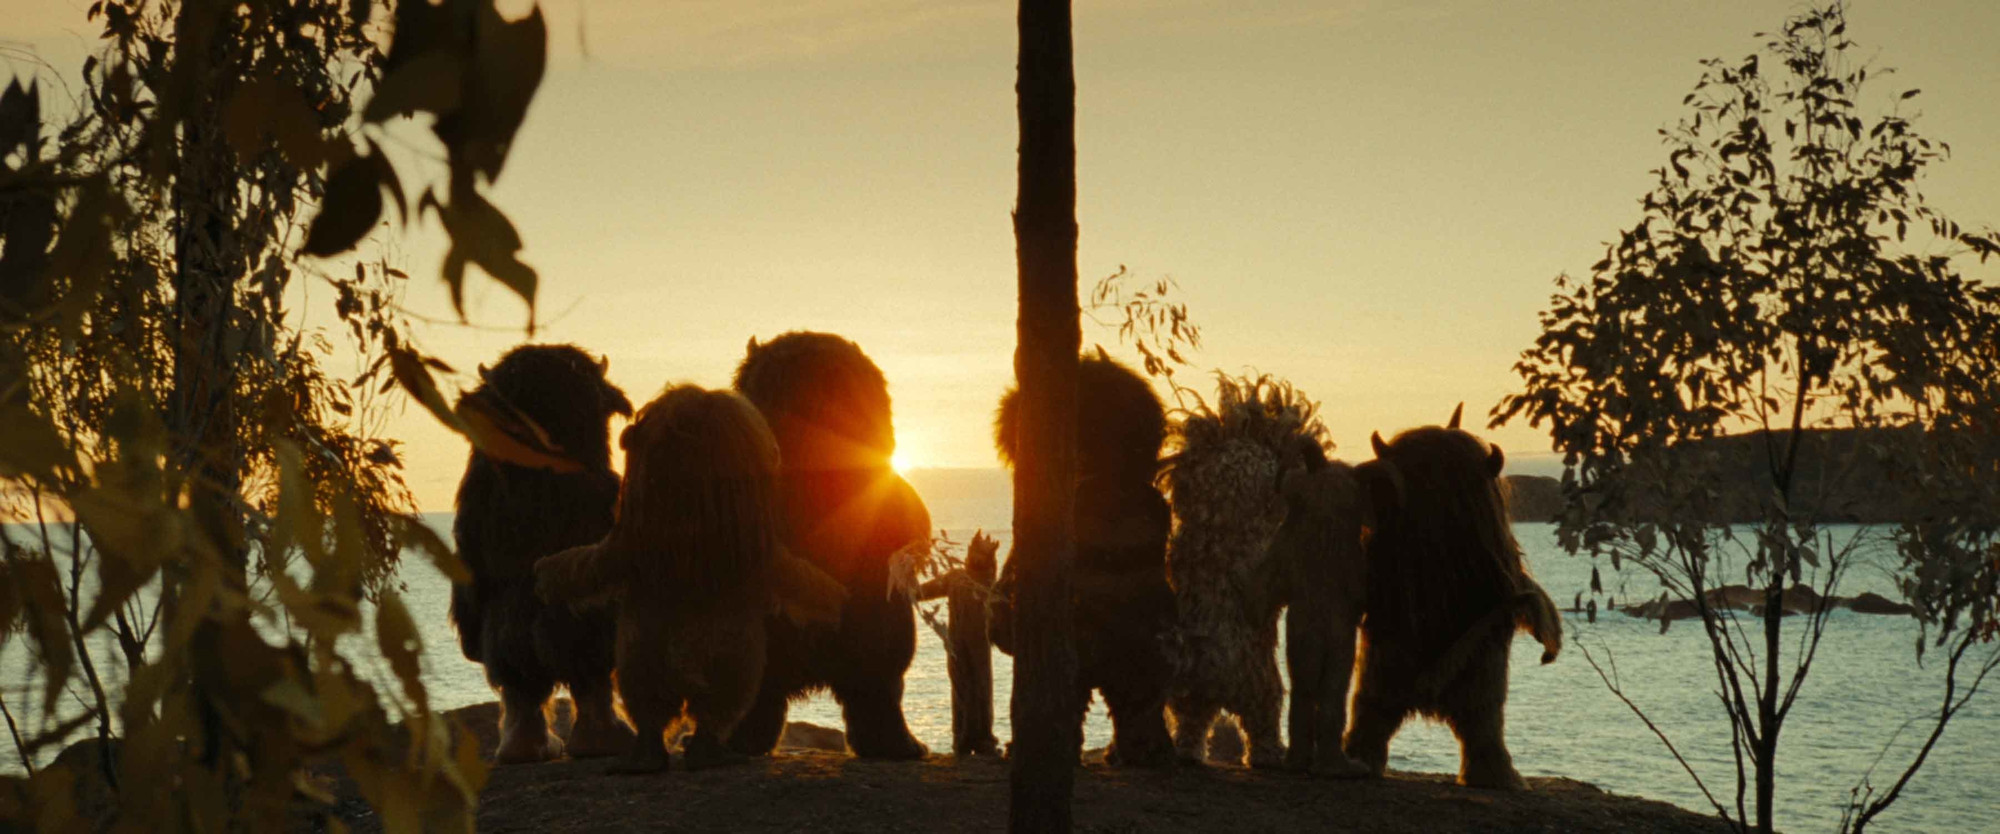 Where the Wild Things Are. 2009. USA. Directed by Spike Jonze